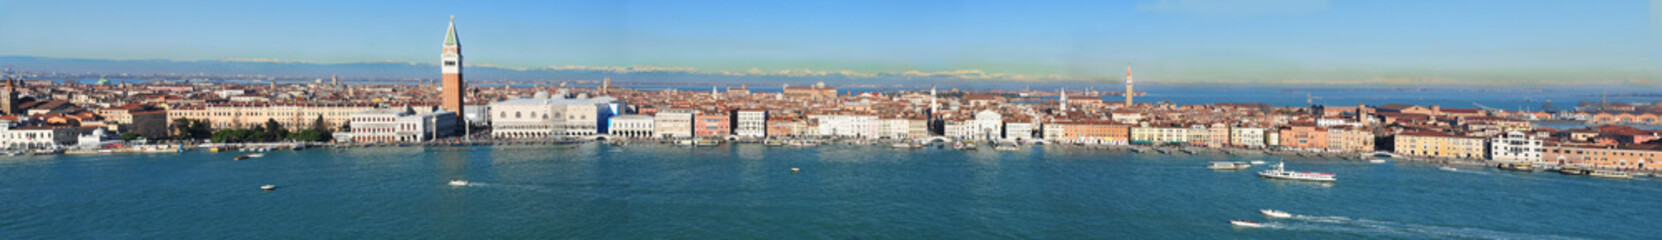 panoramic view of Venice from San Giorgio tower